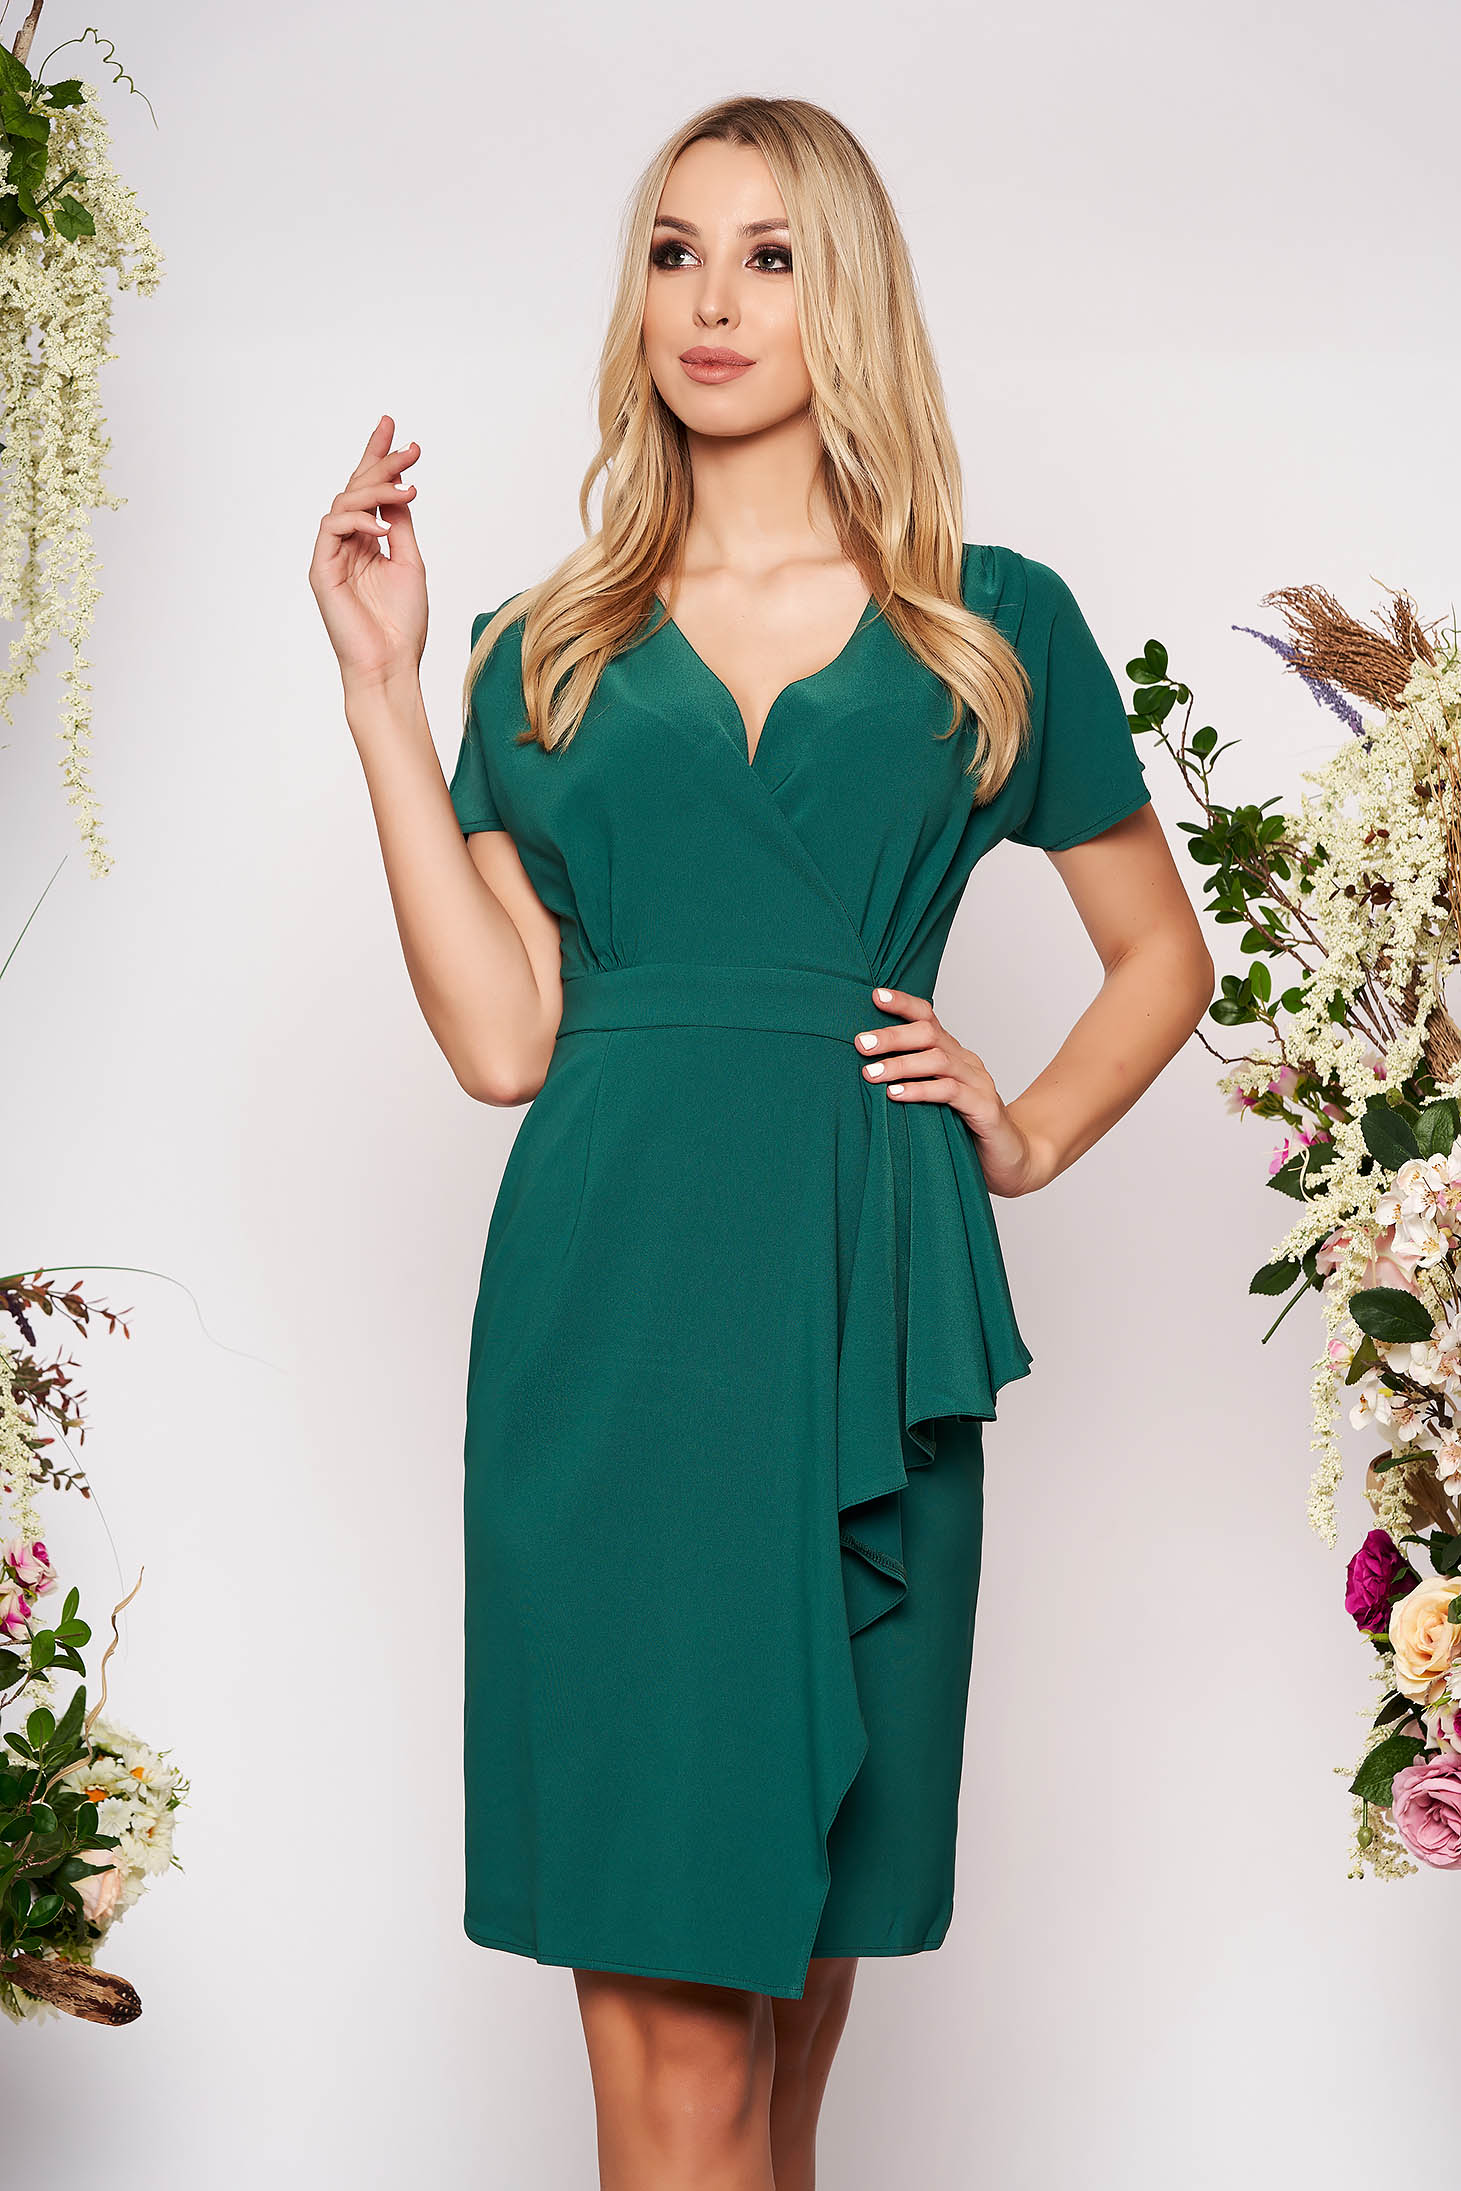 Green dress elegant midi cut material with v-neckline cloth pencil with ruffle details